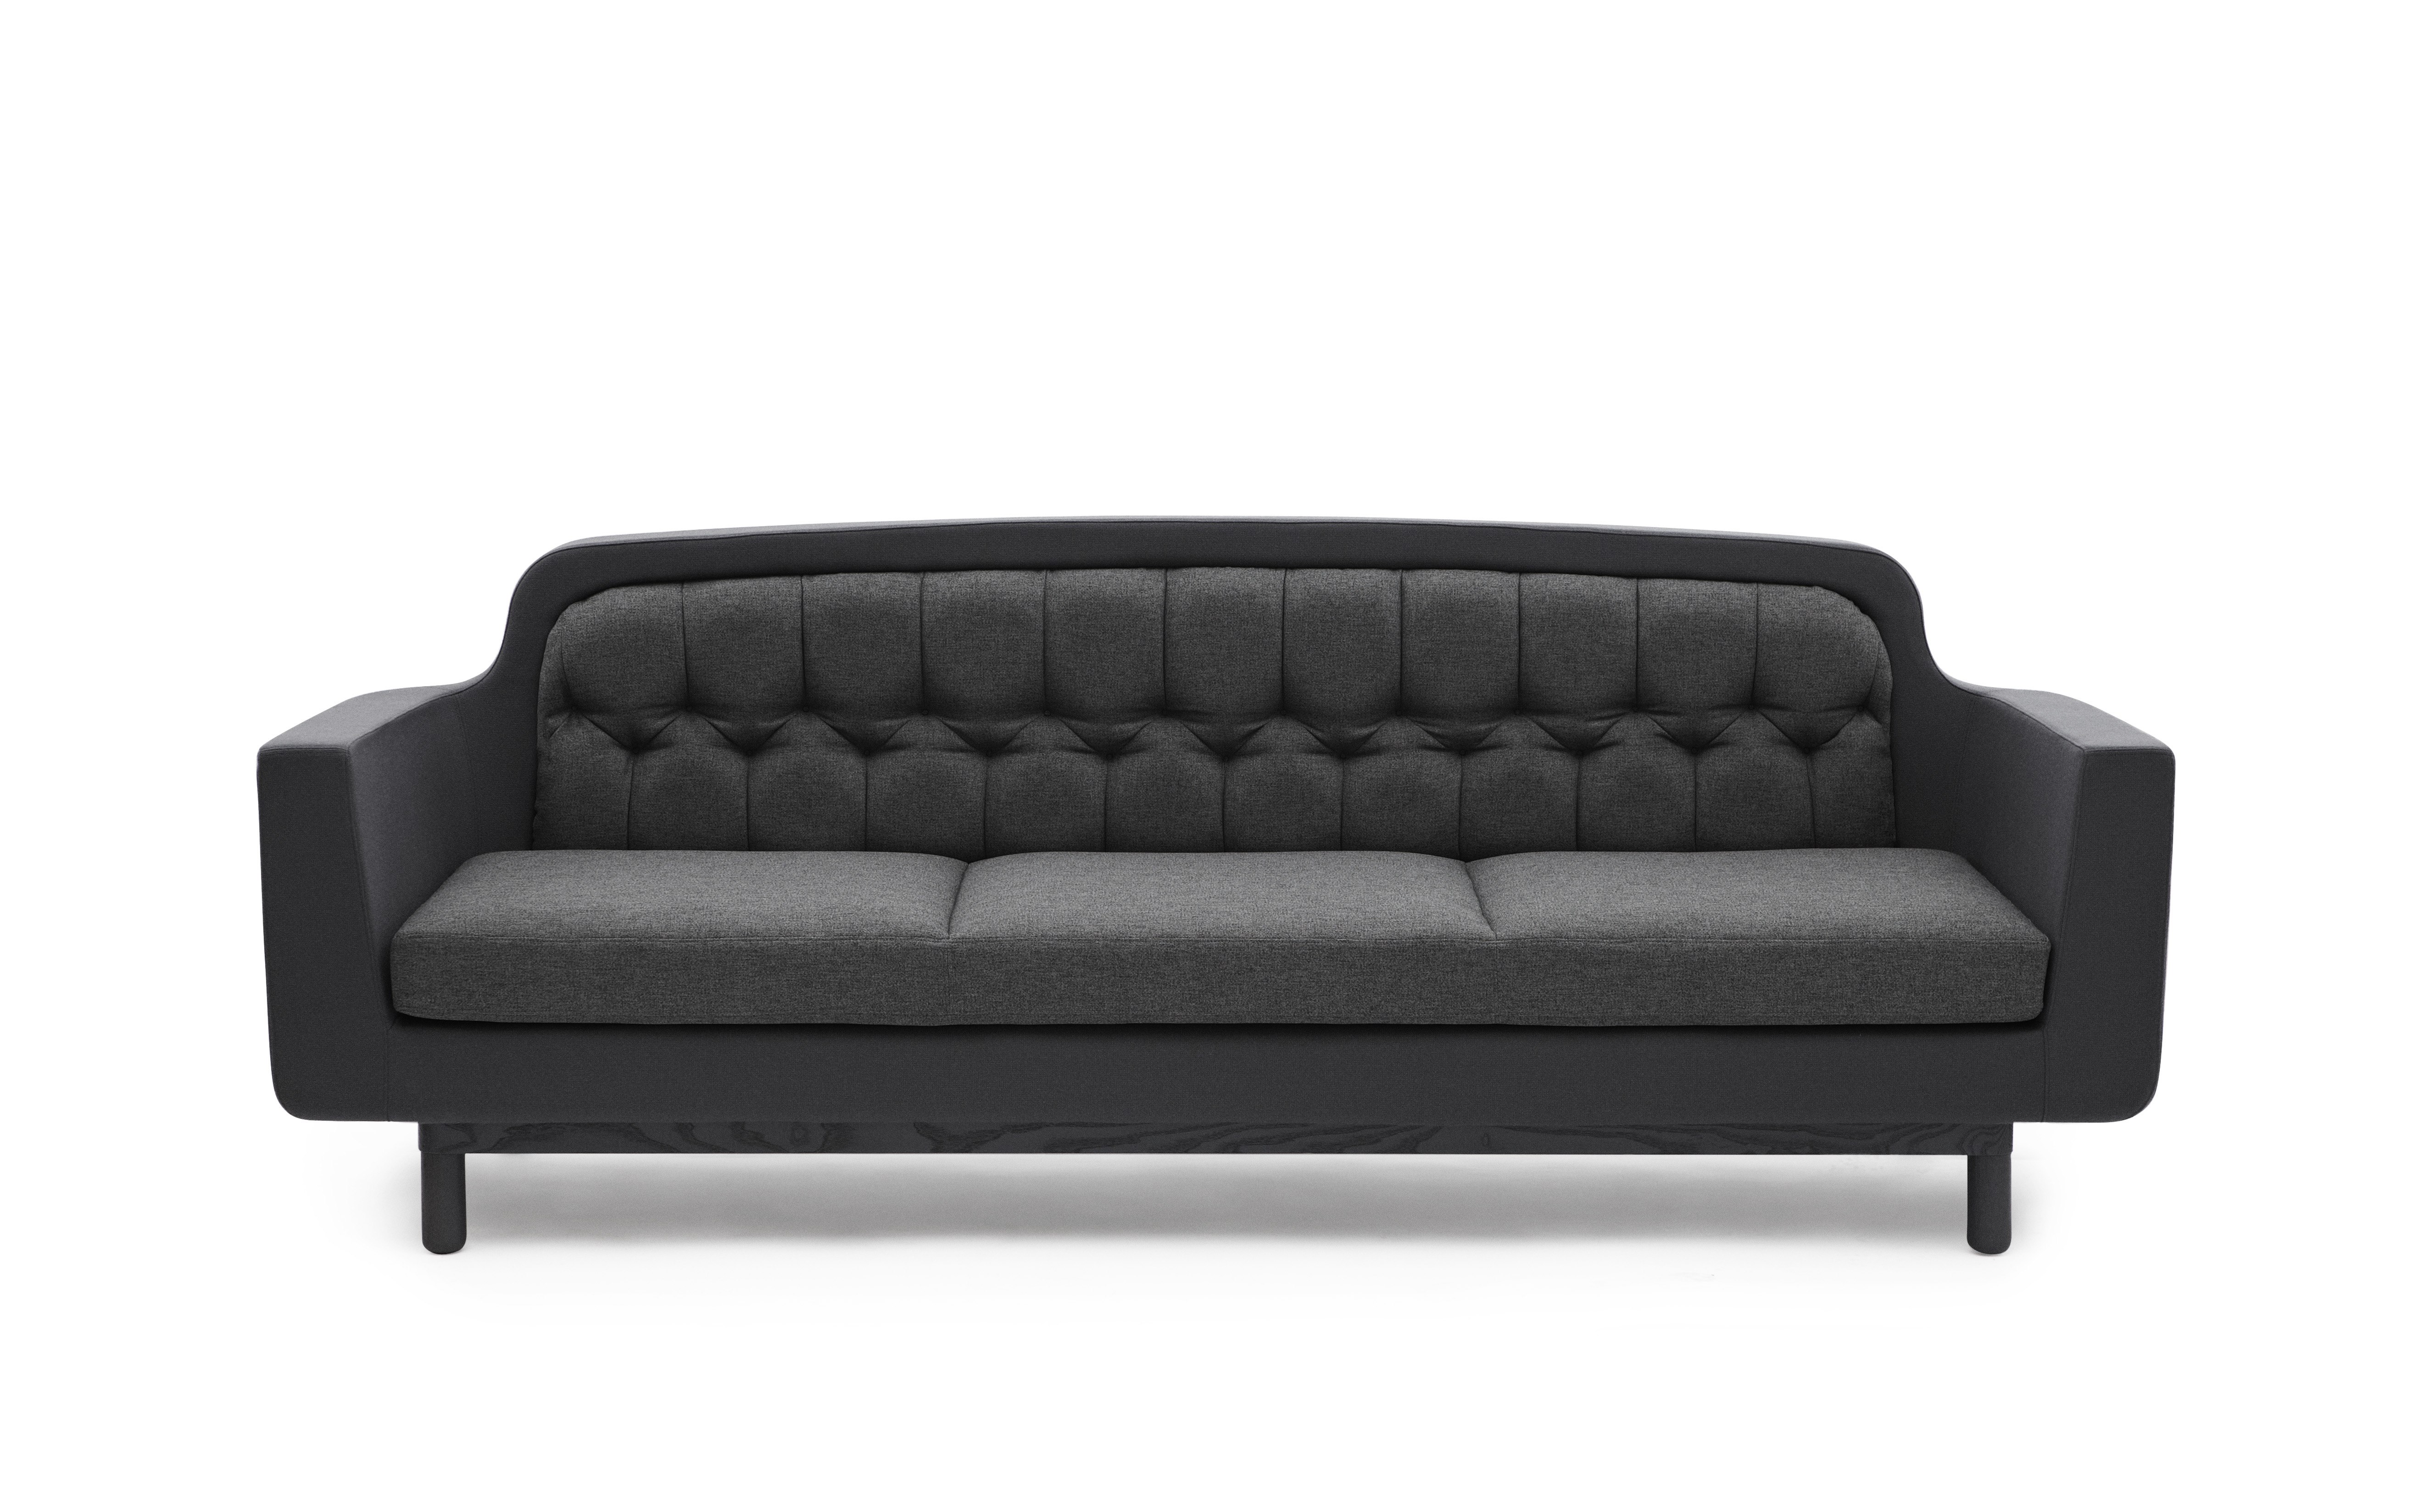 normann copenhagen onkel sofas 2 and 3 seaters design simon legald. Black Bedroom Furniture Sets. Home Design Ideas